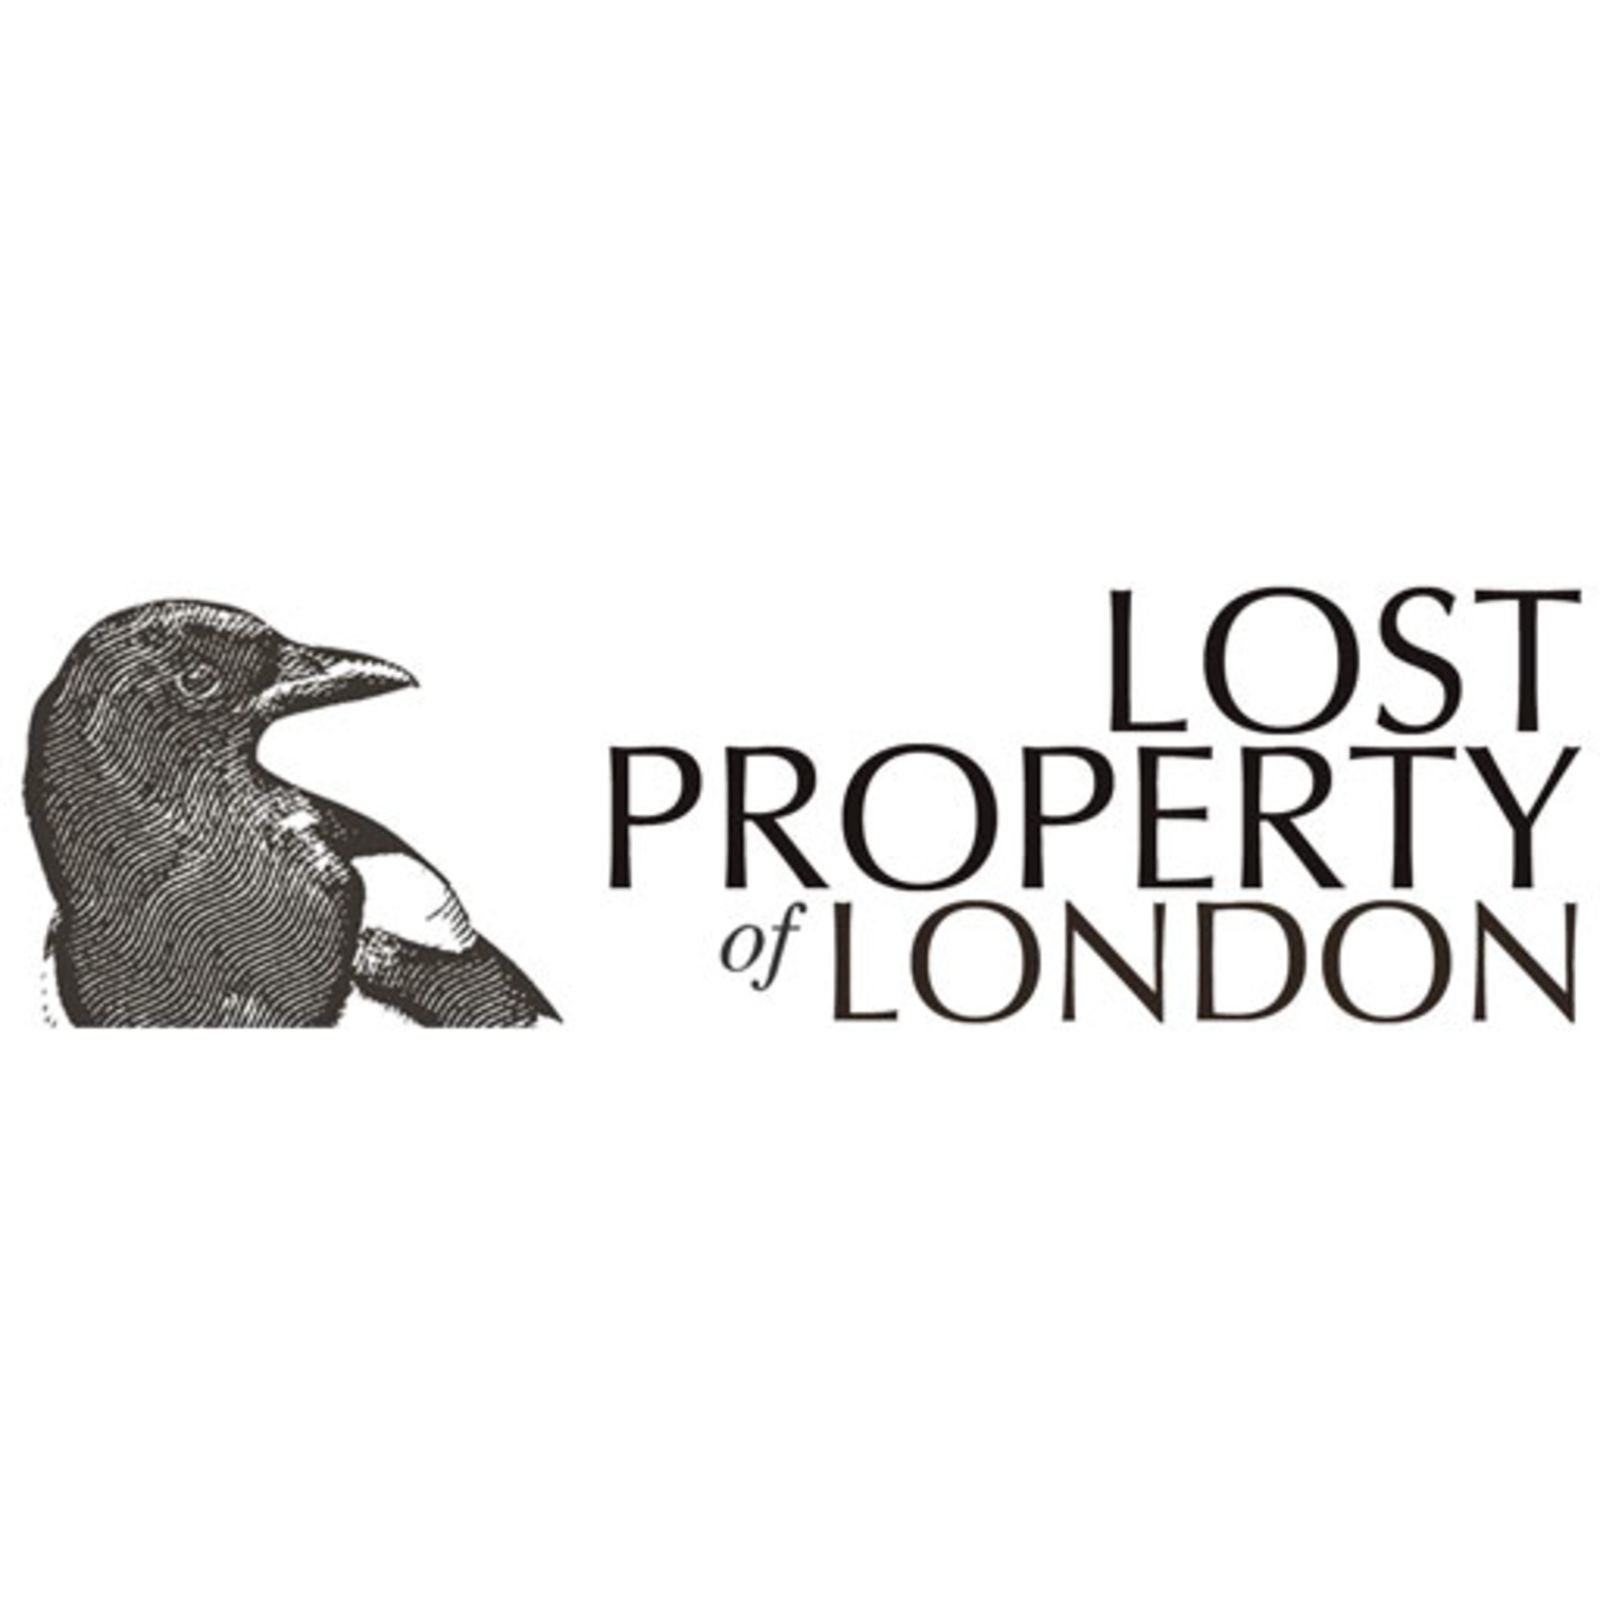 LOST PROPERTY of LONDON